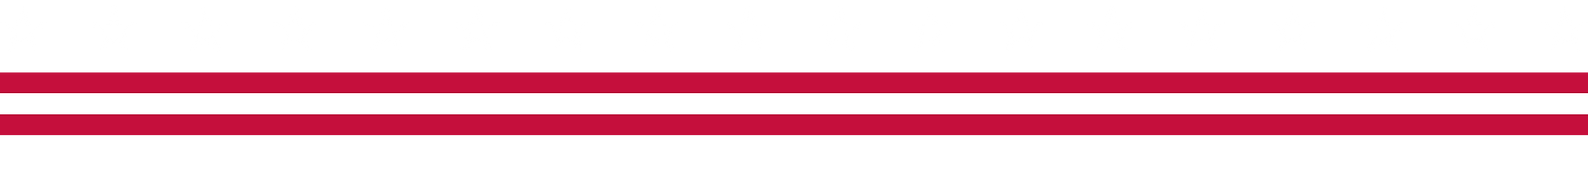 Image of Stars and Stripes